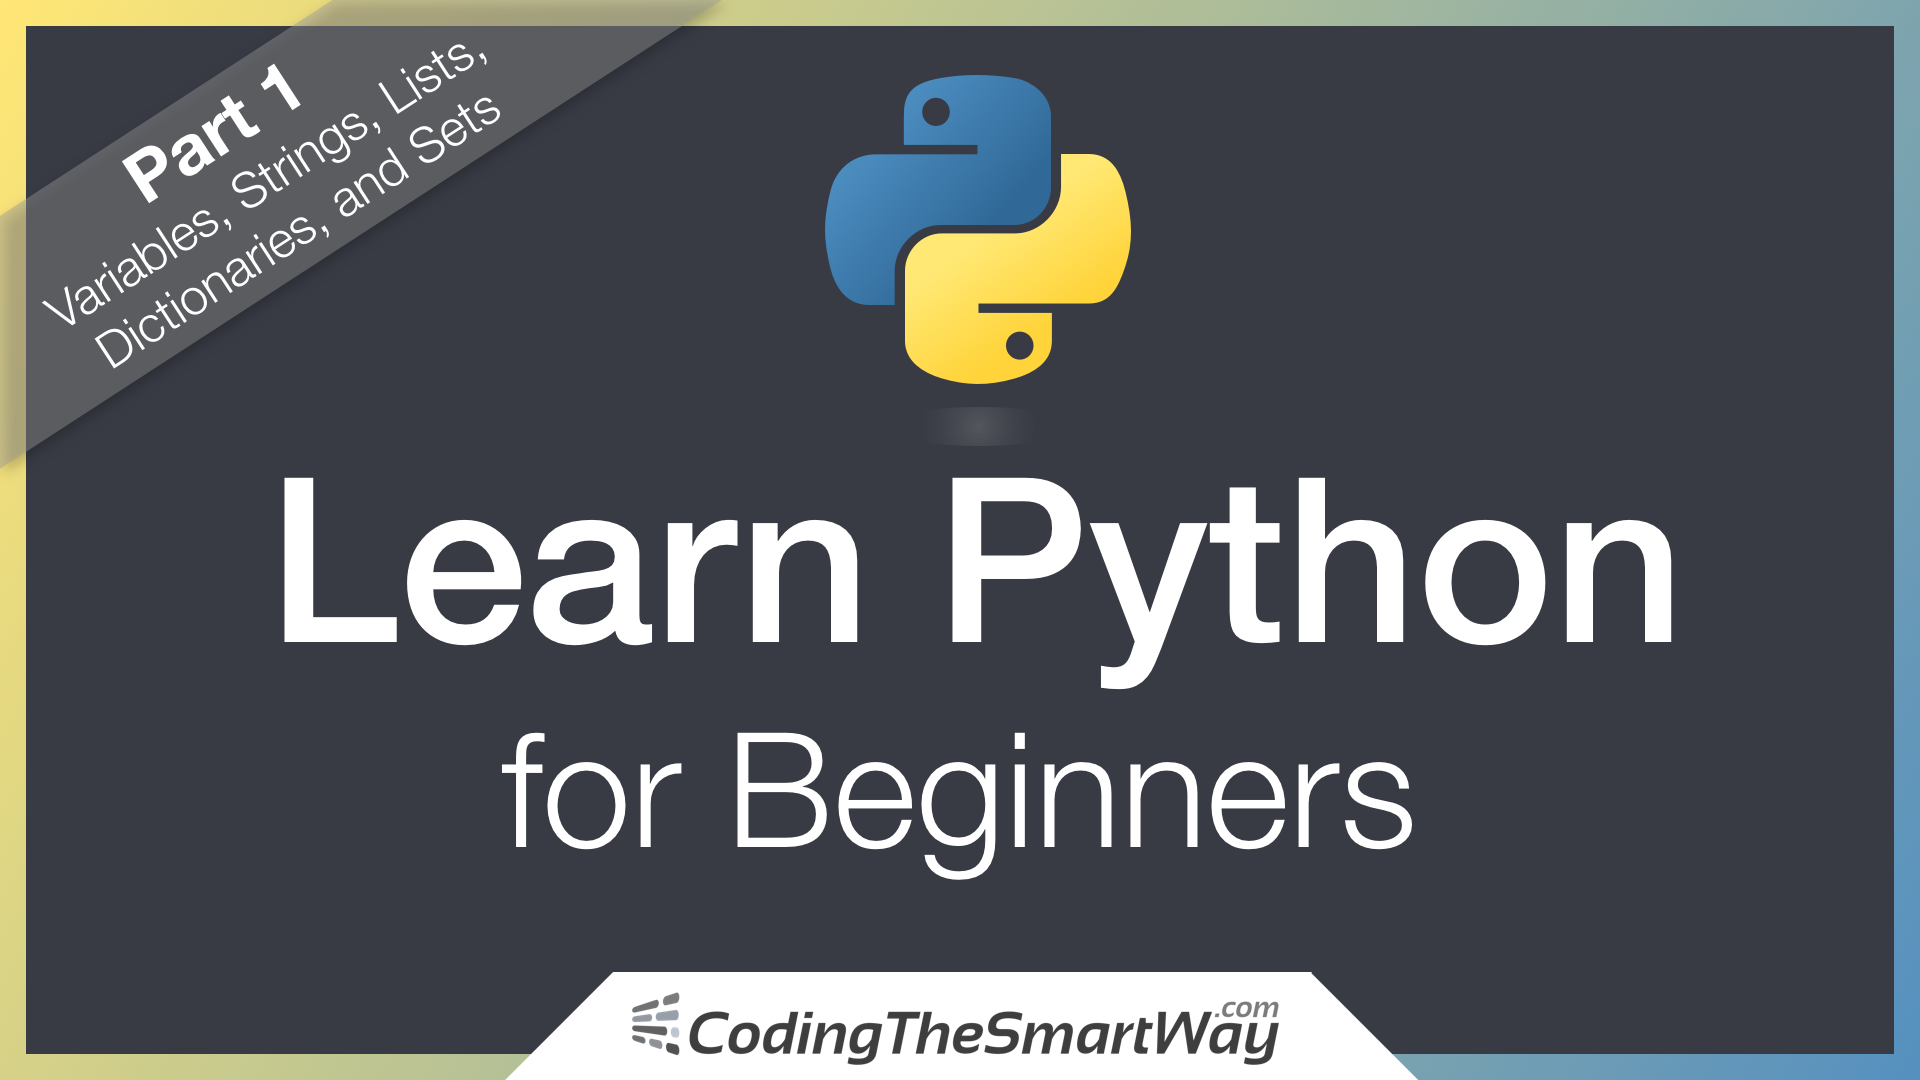 Learn Python for Beginners - CodingTheSmartWay com Blog - Medium